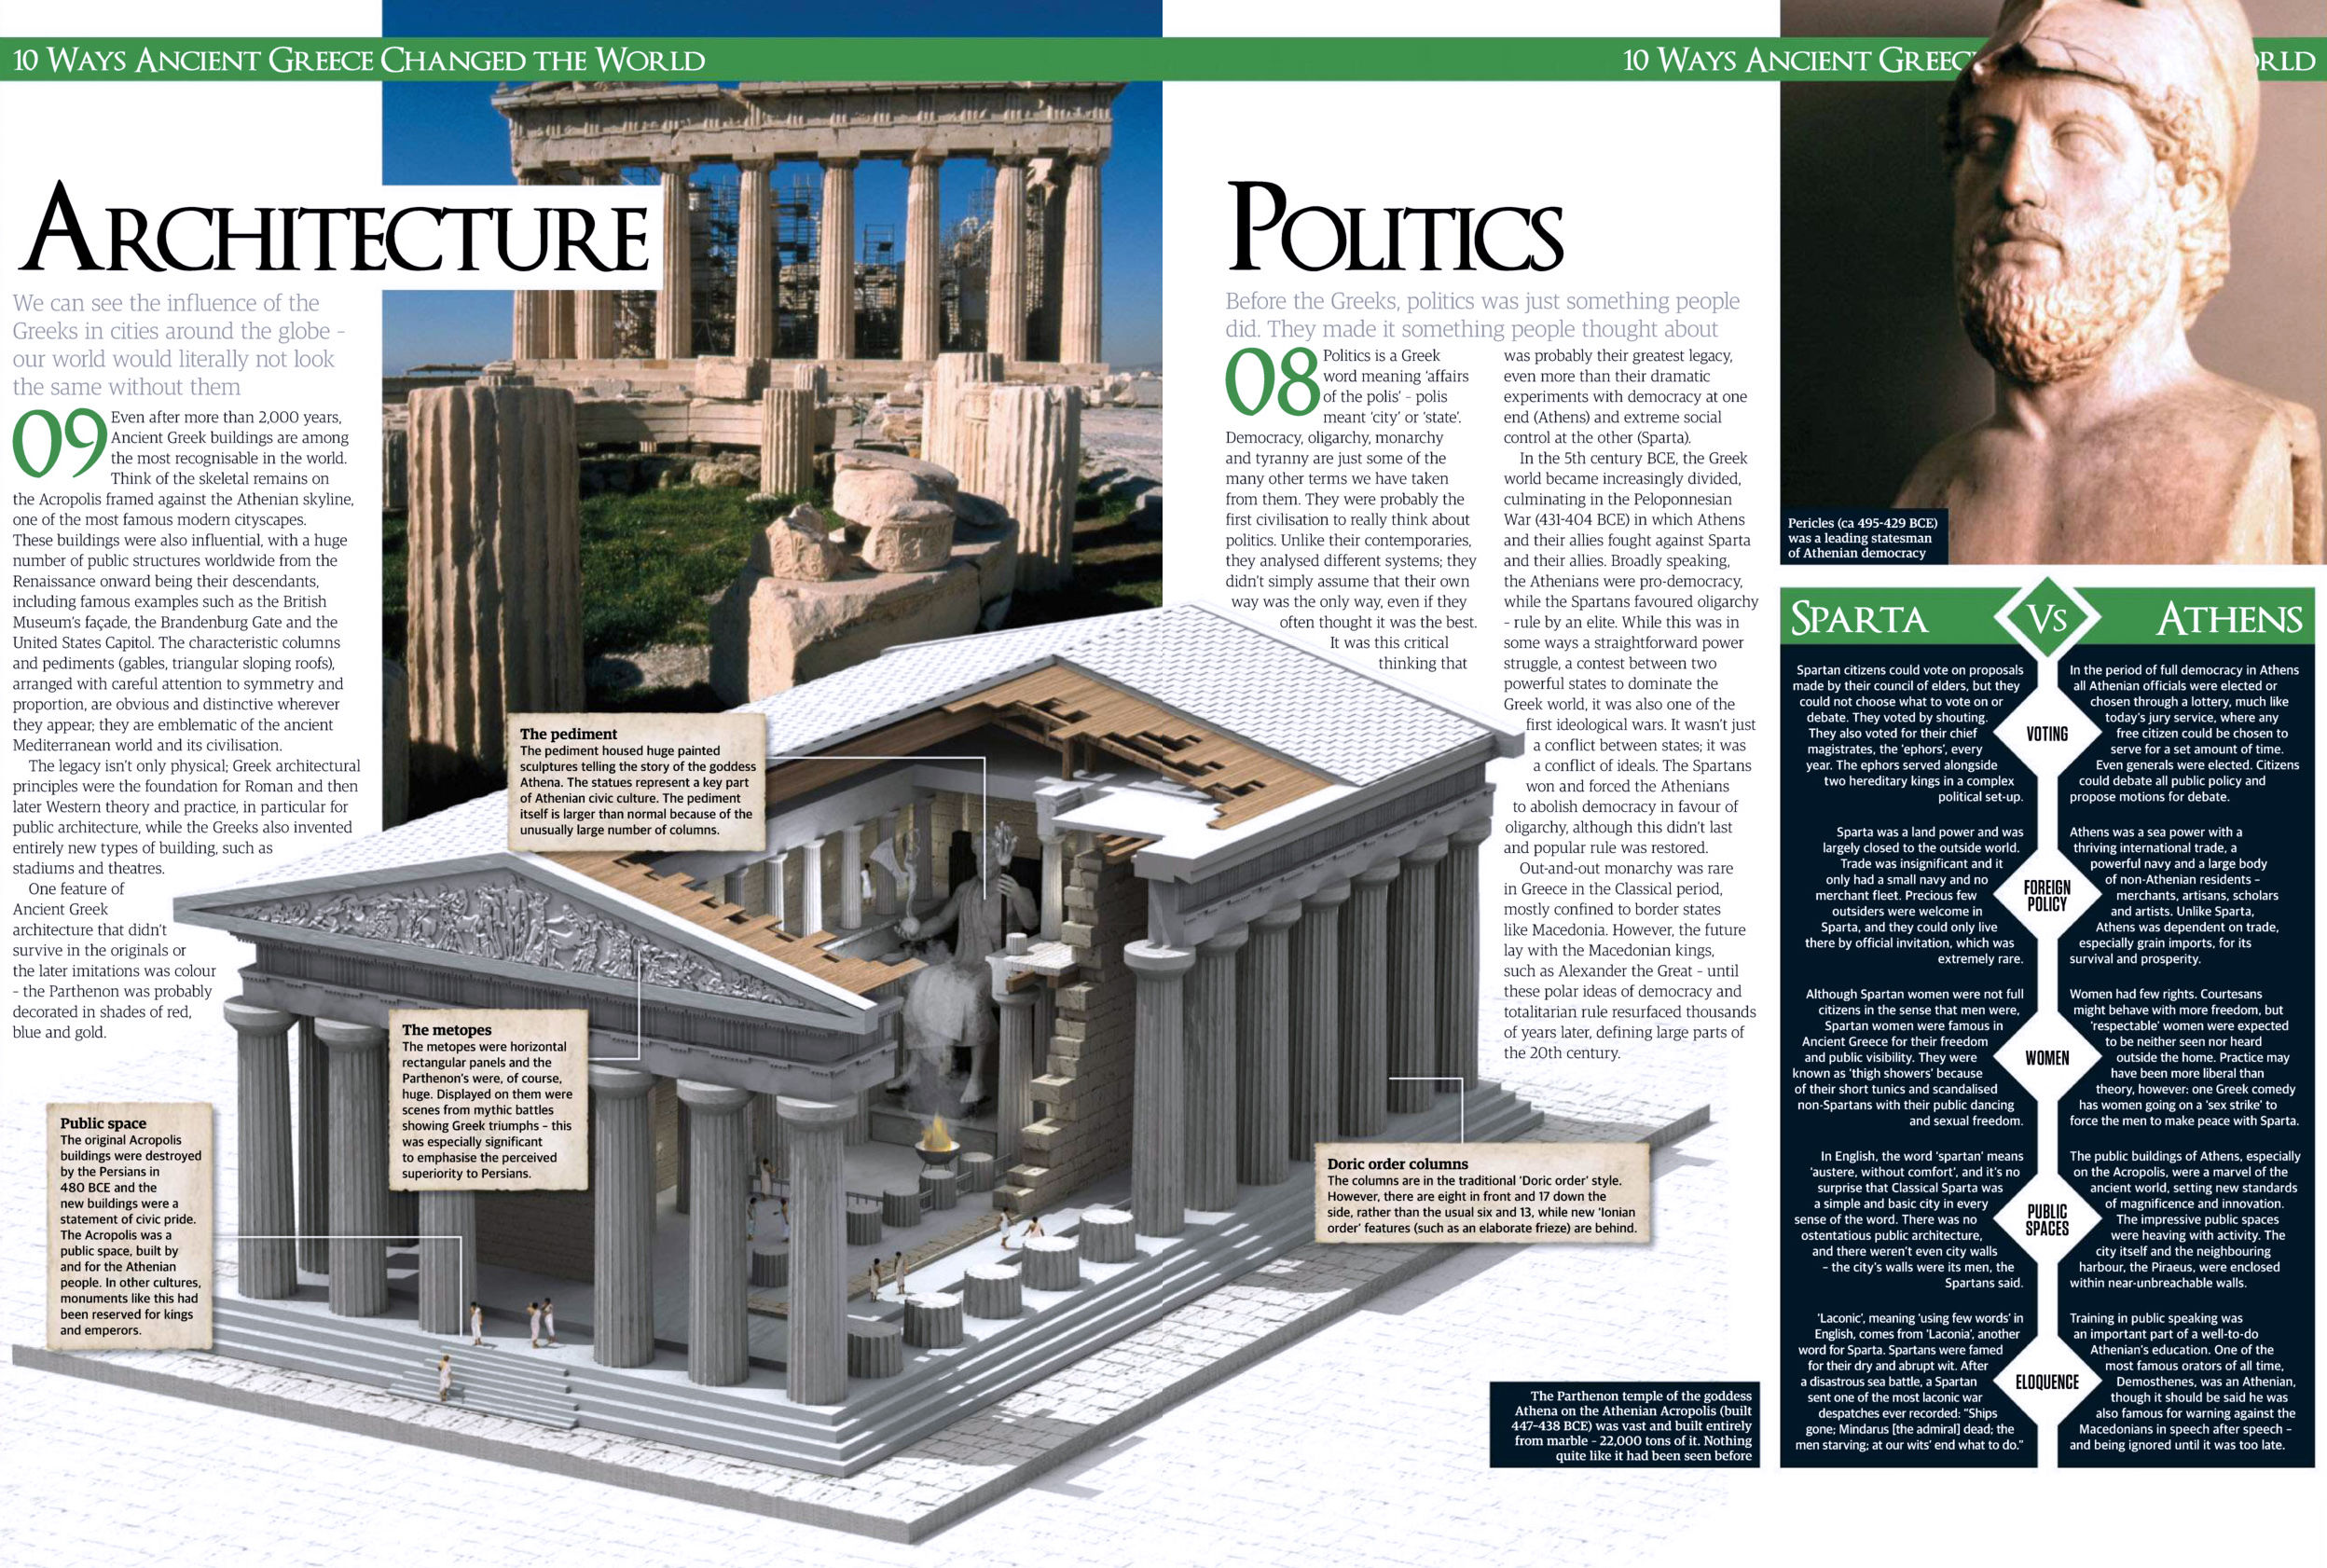 ancient history hsc the greek world This site is actually for the historical period 800-500 bc but for some crossover aspects on democracy and the earlier history of athens -it might prove interesting.